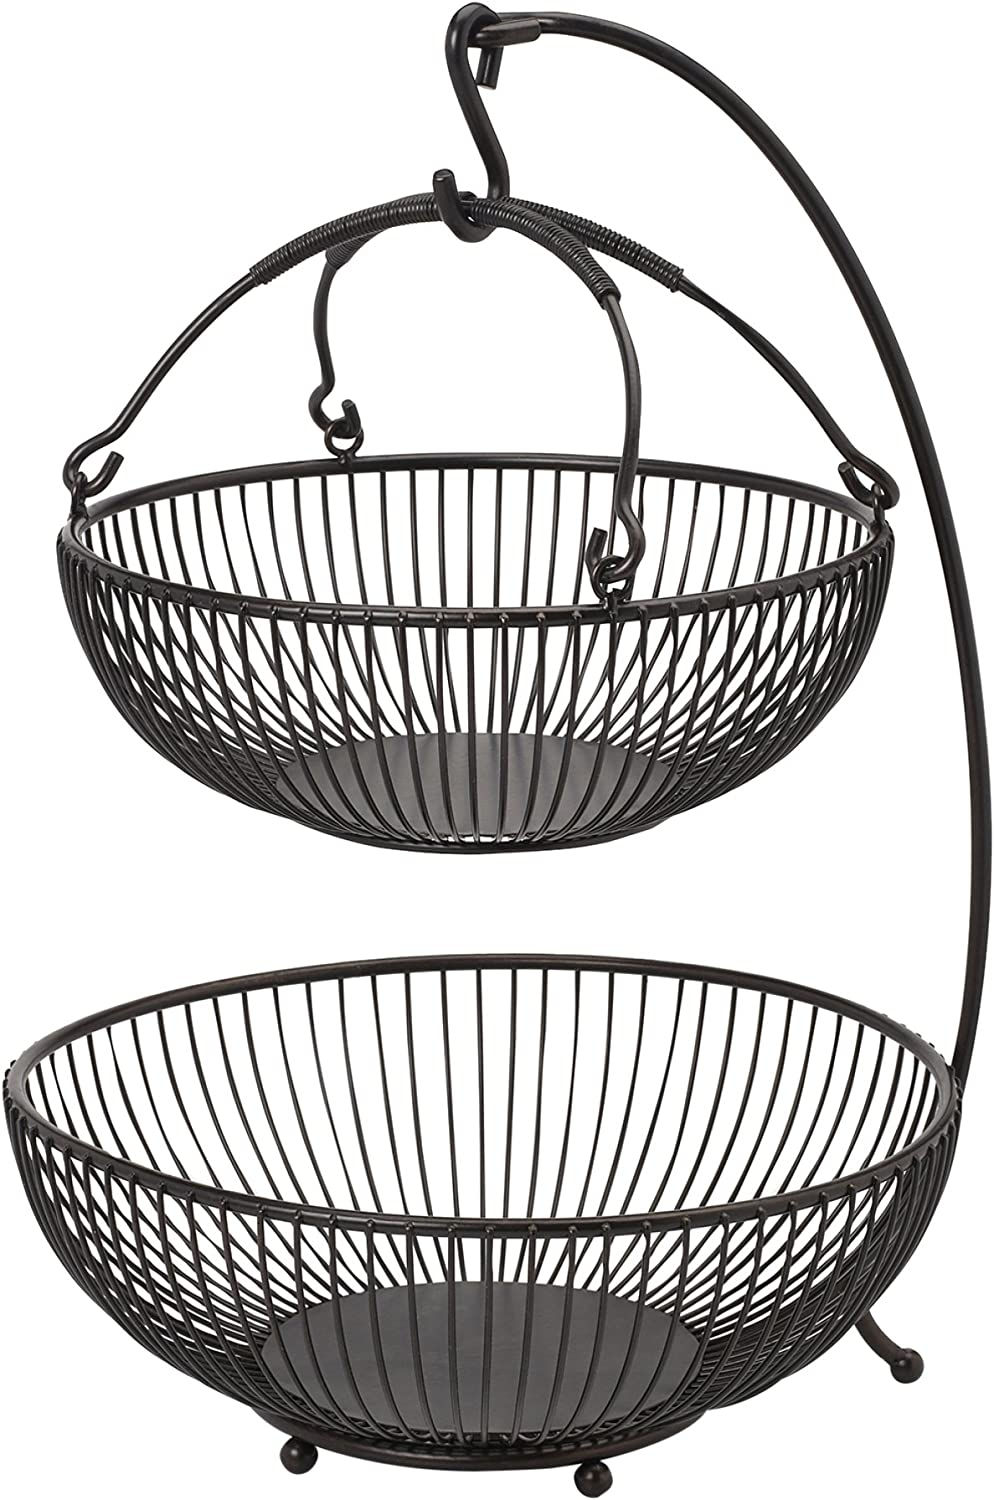 Gourmet Basics By Mikasa Spindle Adjustable 2 Tier Basket With Banana Hook Black With Gold Antiquing Kitchen Dining